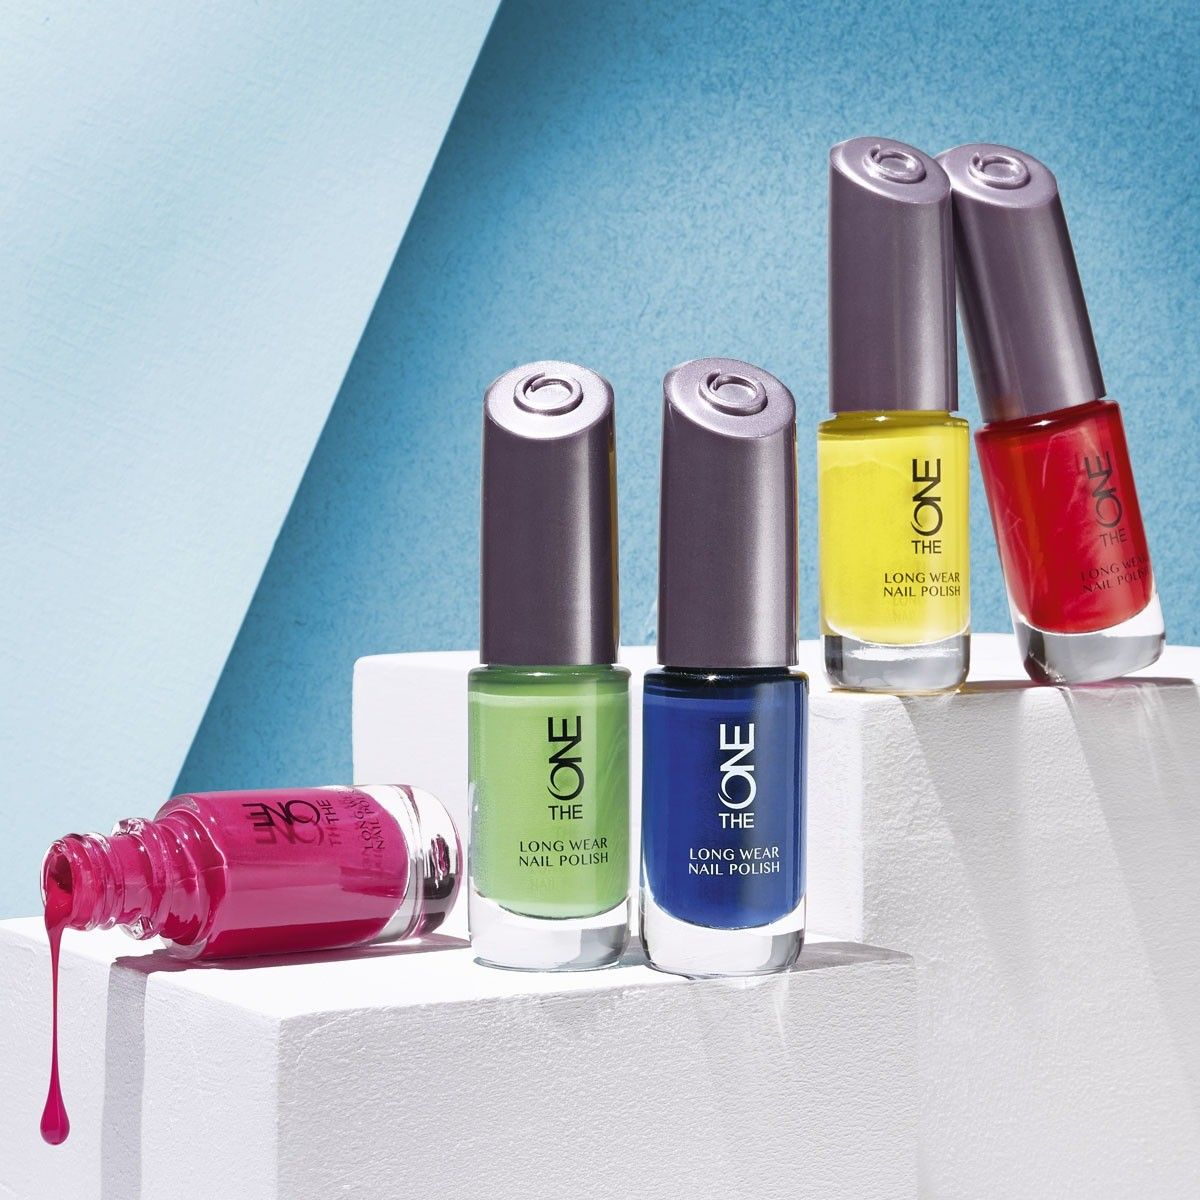 Longlasting high coverage nail polish in the latest